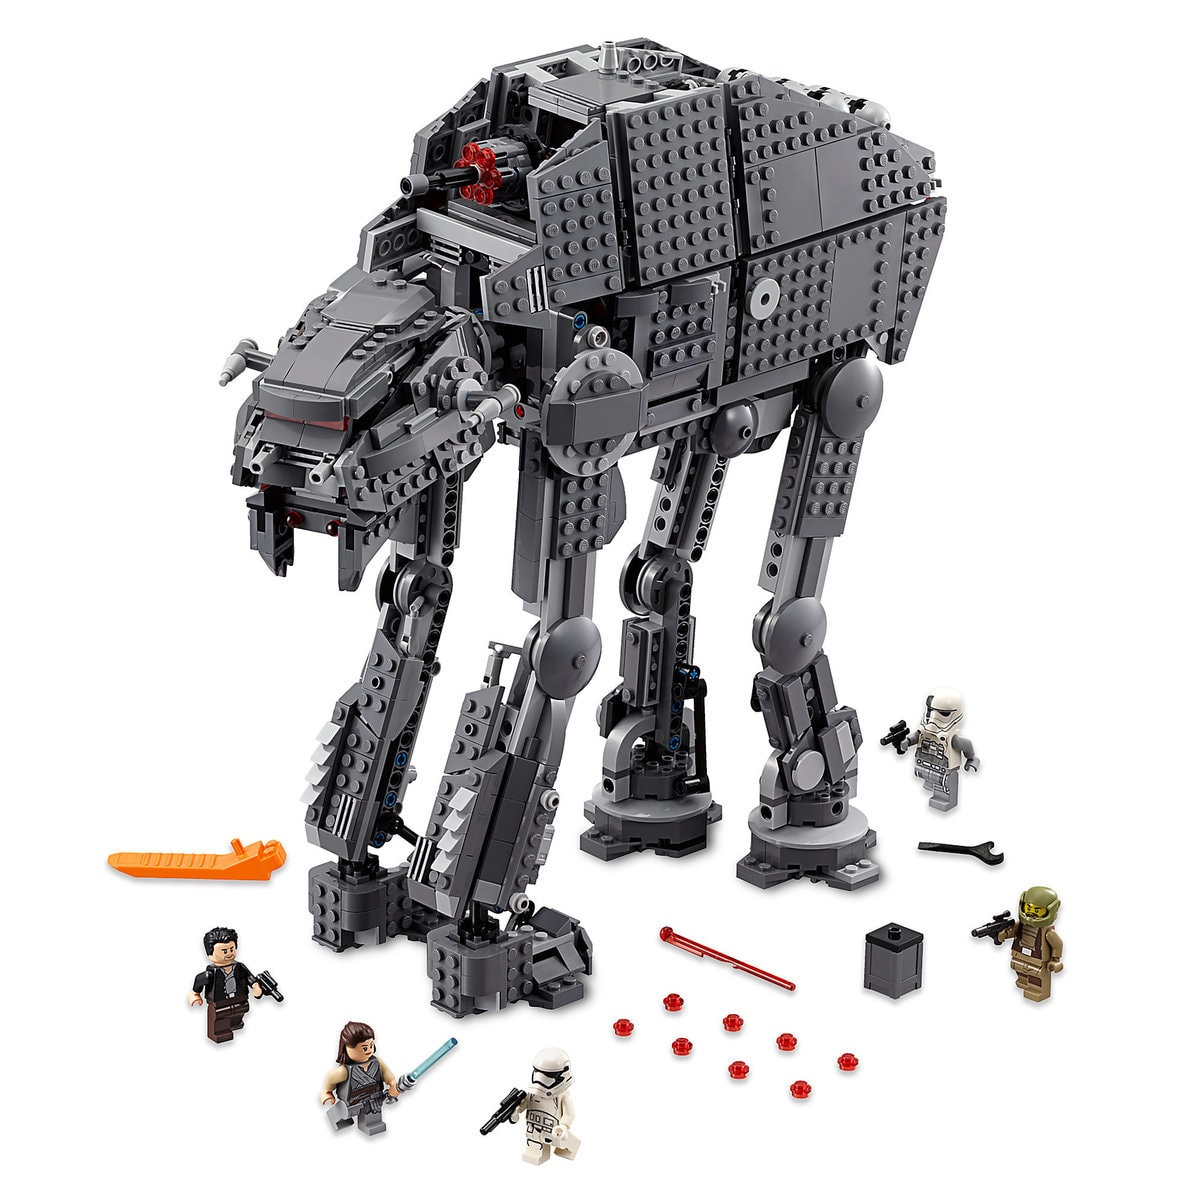 867ed5a27092 Product Image of First Order Heavy Assault Walker by LEGO - Star Wars: The  Last